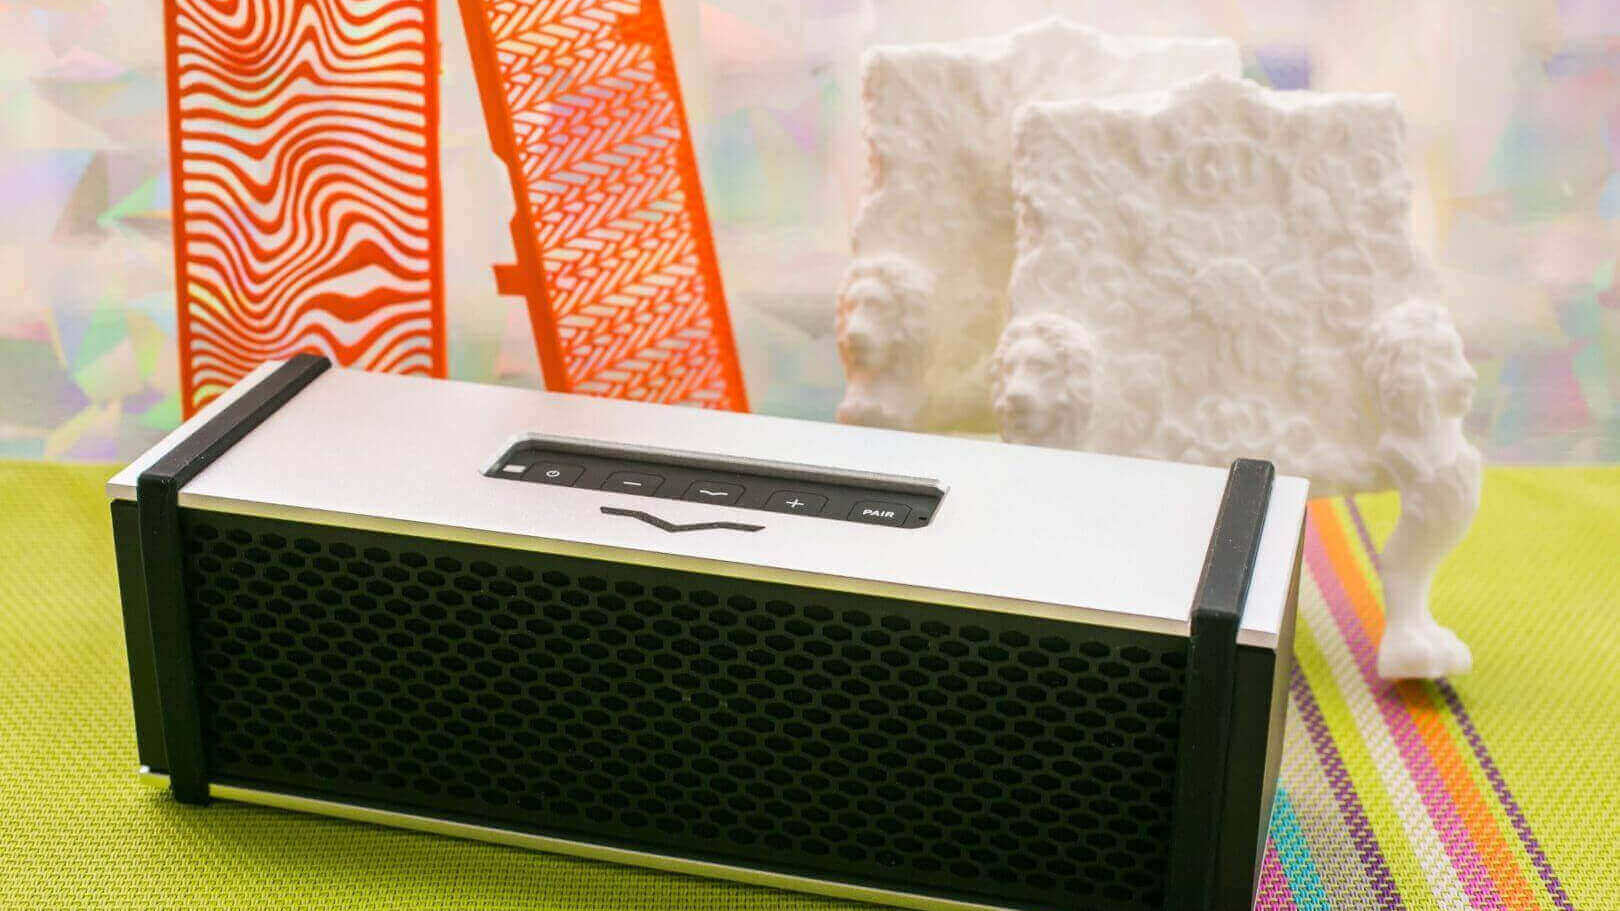 V-Moda Remix: Bluetooth Speaker Customized With 3D Printing | All3DP